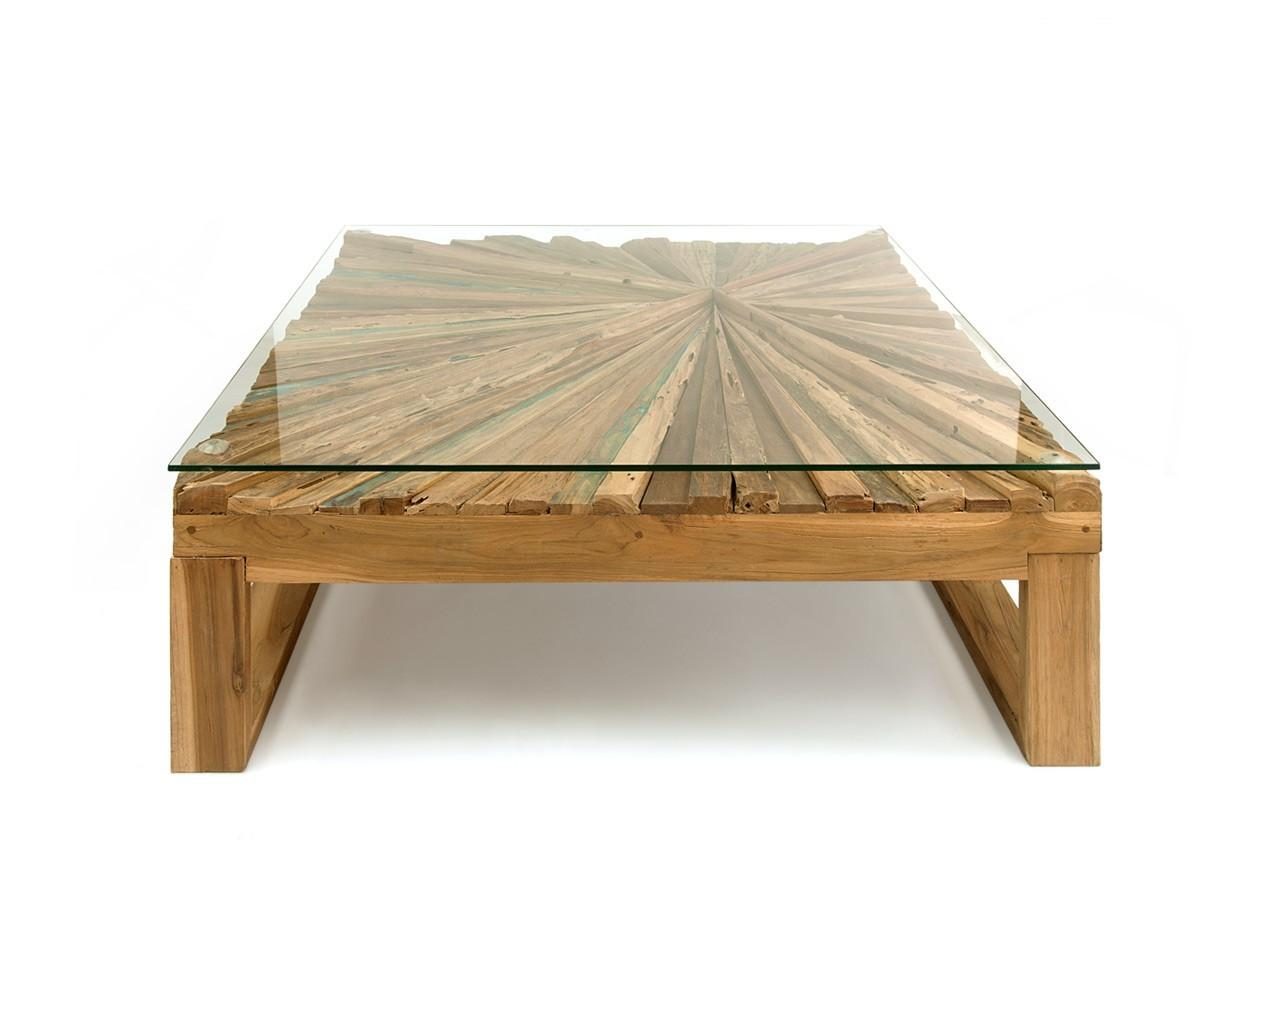 Trend Wood Glass Coffee Table Interior Decor Home